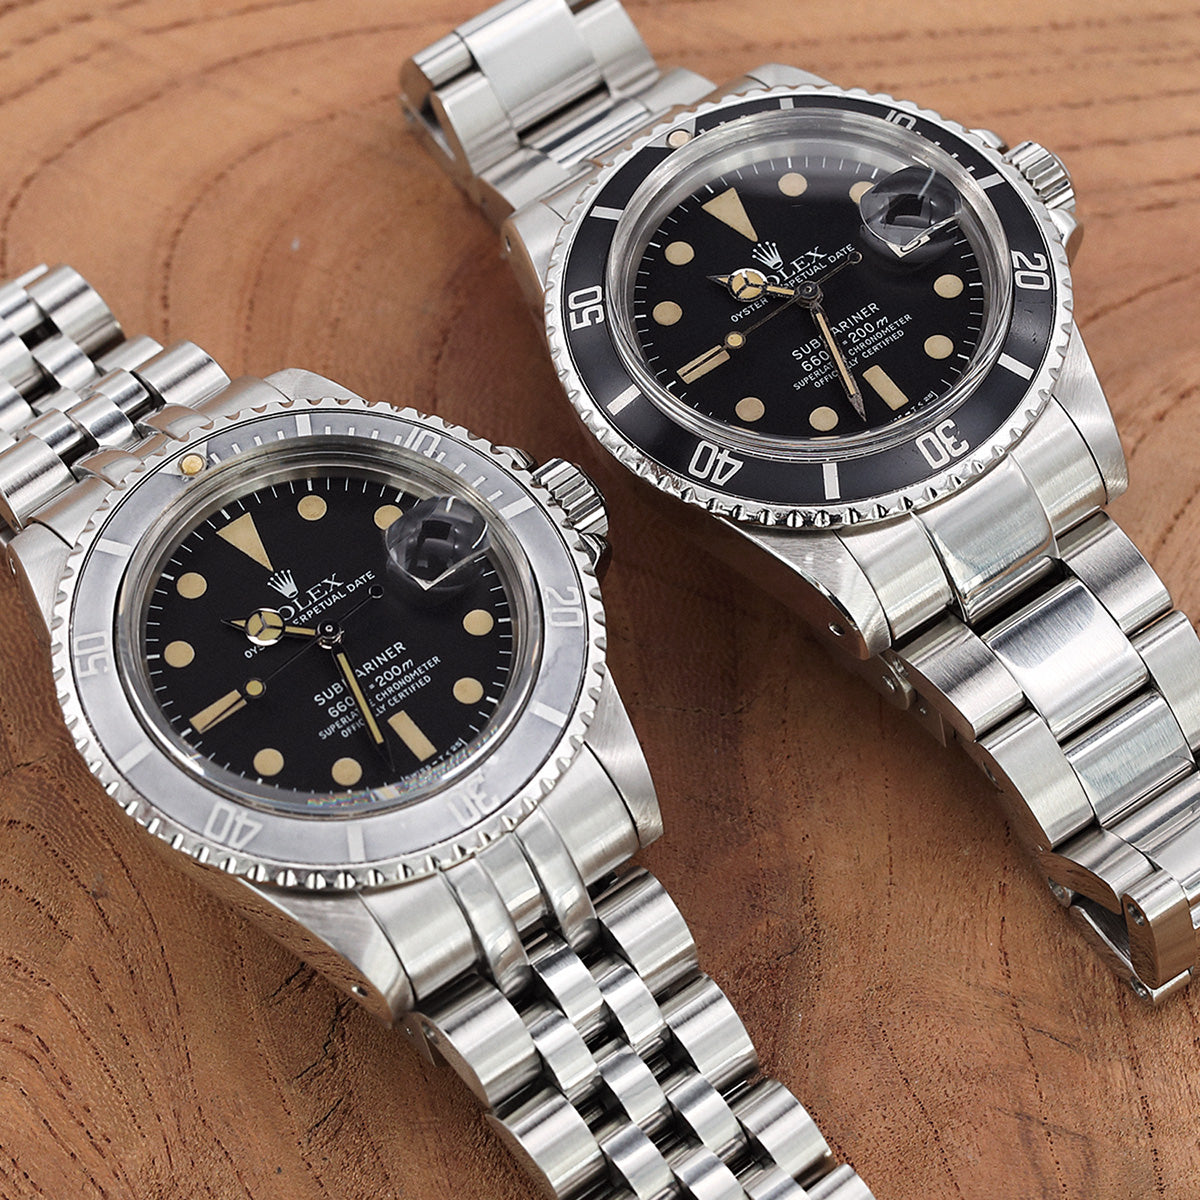 The perpetual nature of Rolex Oyster bracelet